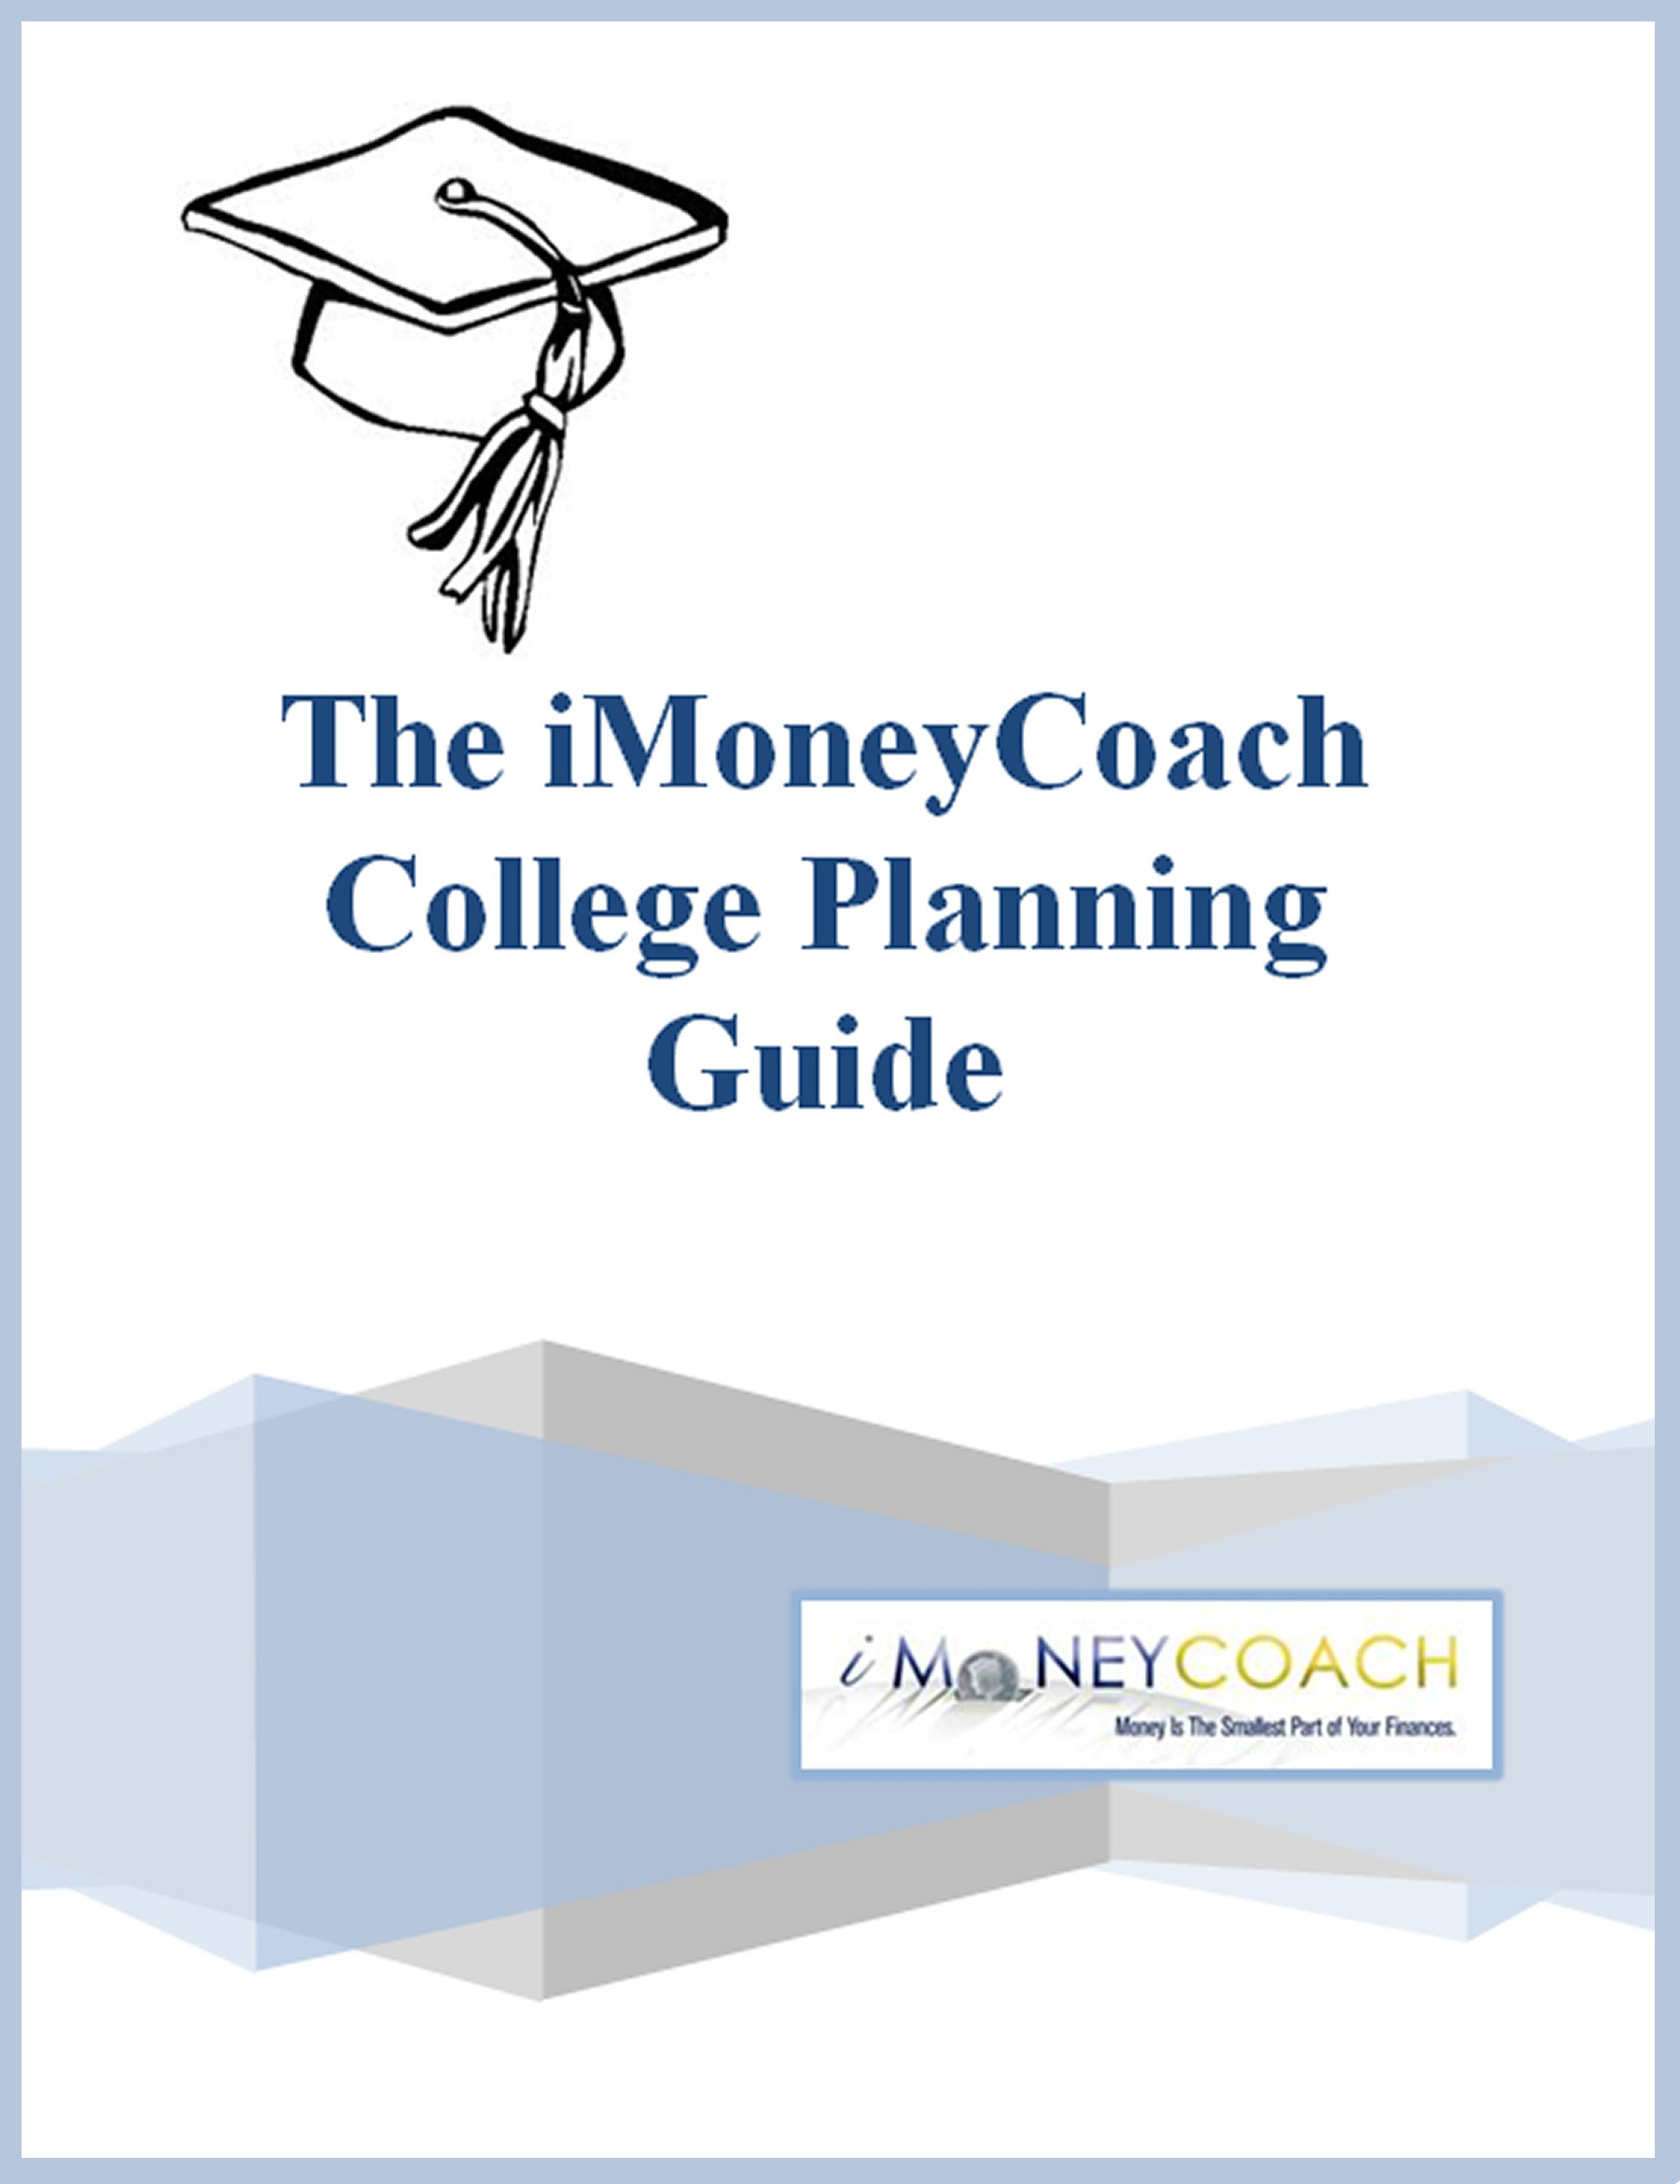 The iMoneyCoach College Planning Guide